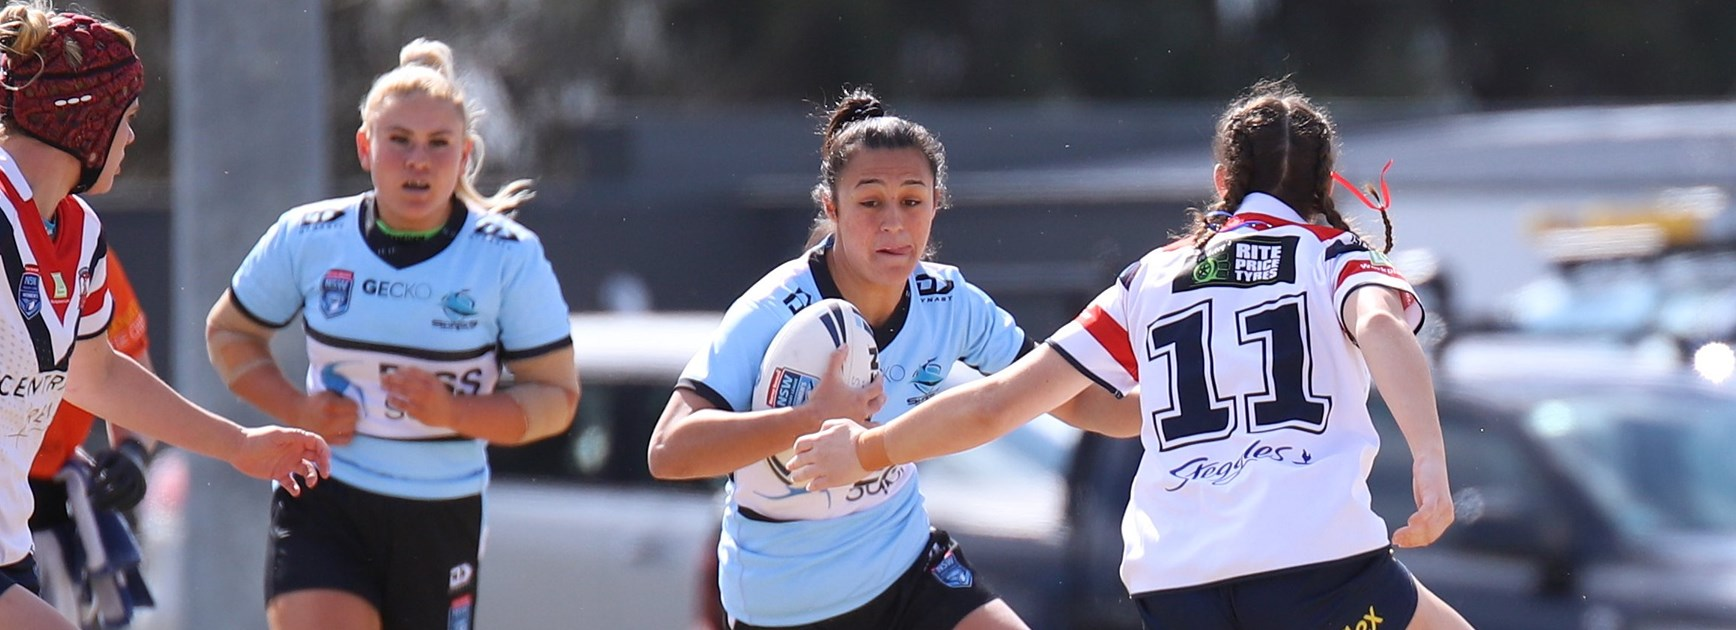 Unbeaten run ends for Sharks women